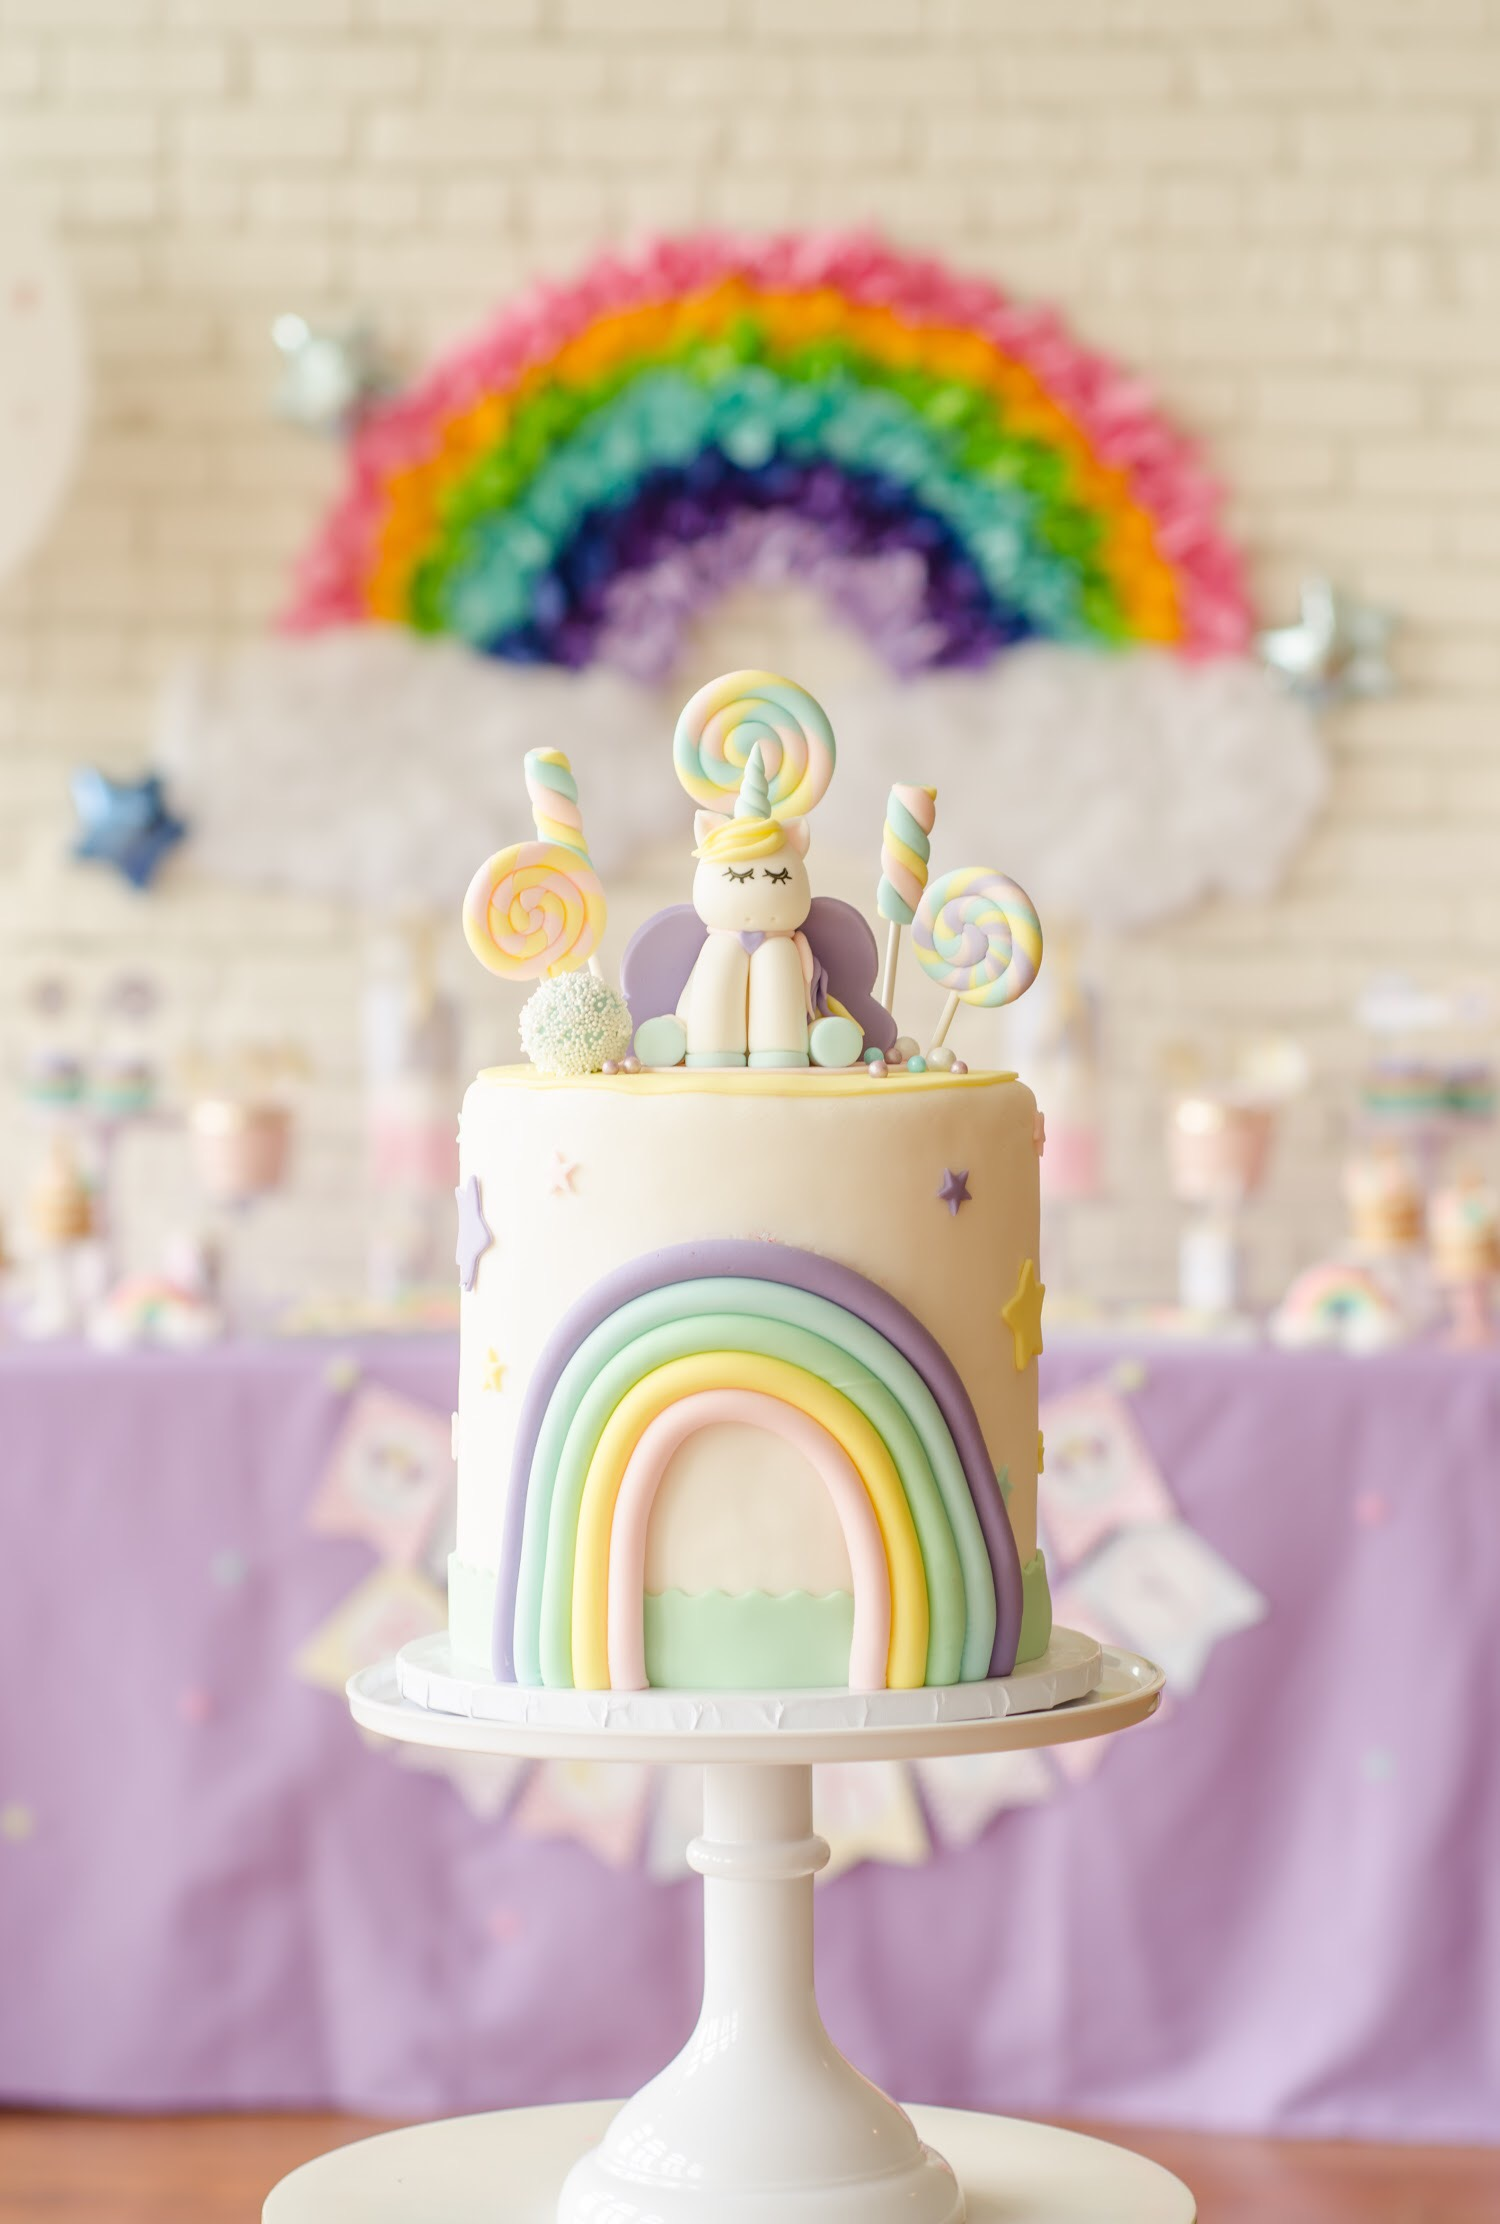 Super cute Unicorn birthday cake from Sweet Carousel Cakes. Come see all the cute Unicorn Birthday Party Ideas at Mint Event Design www.minteventdesign.com #unicornparty #birthdayparty #birthdaypartyideas #pastelrainbow #birthdaycake